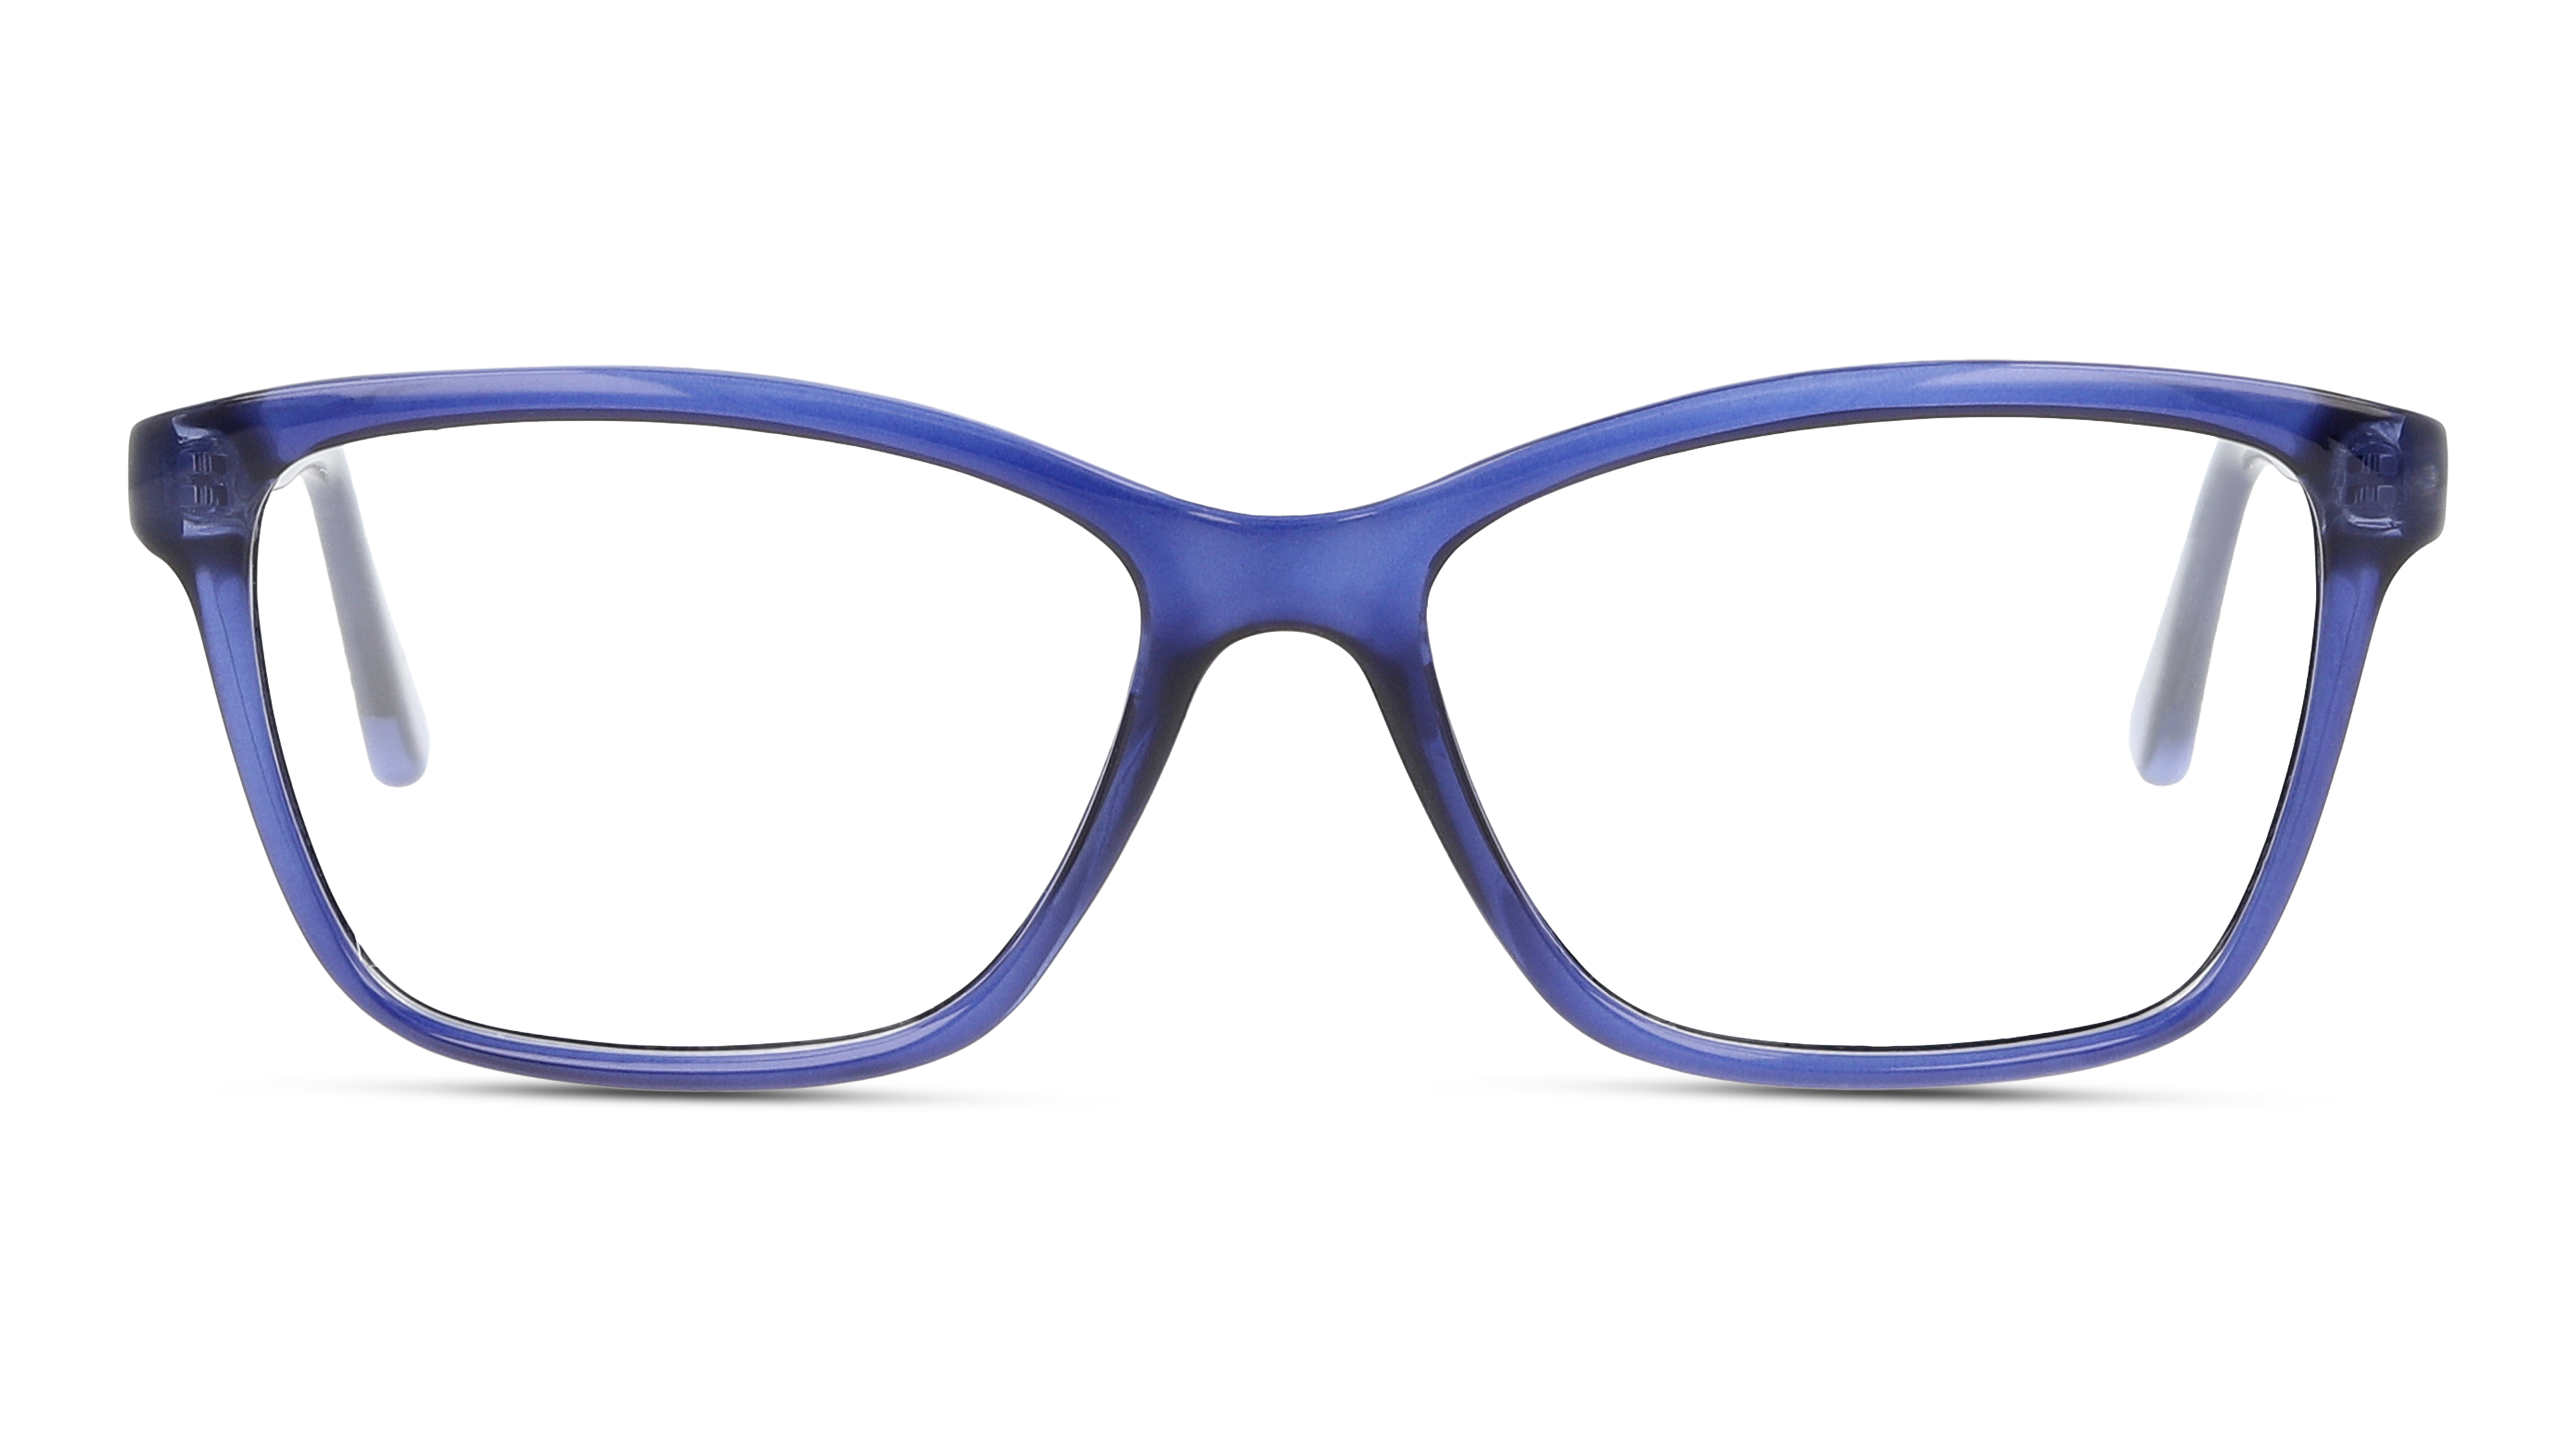 Front Seen Seen SNFF10 CT 53/15 Blauw, Transparant